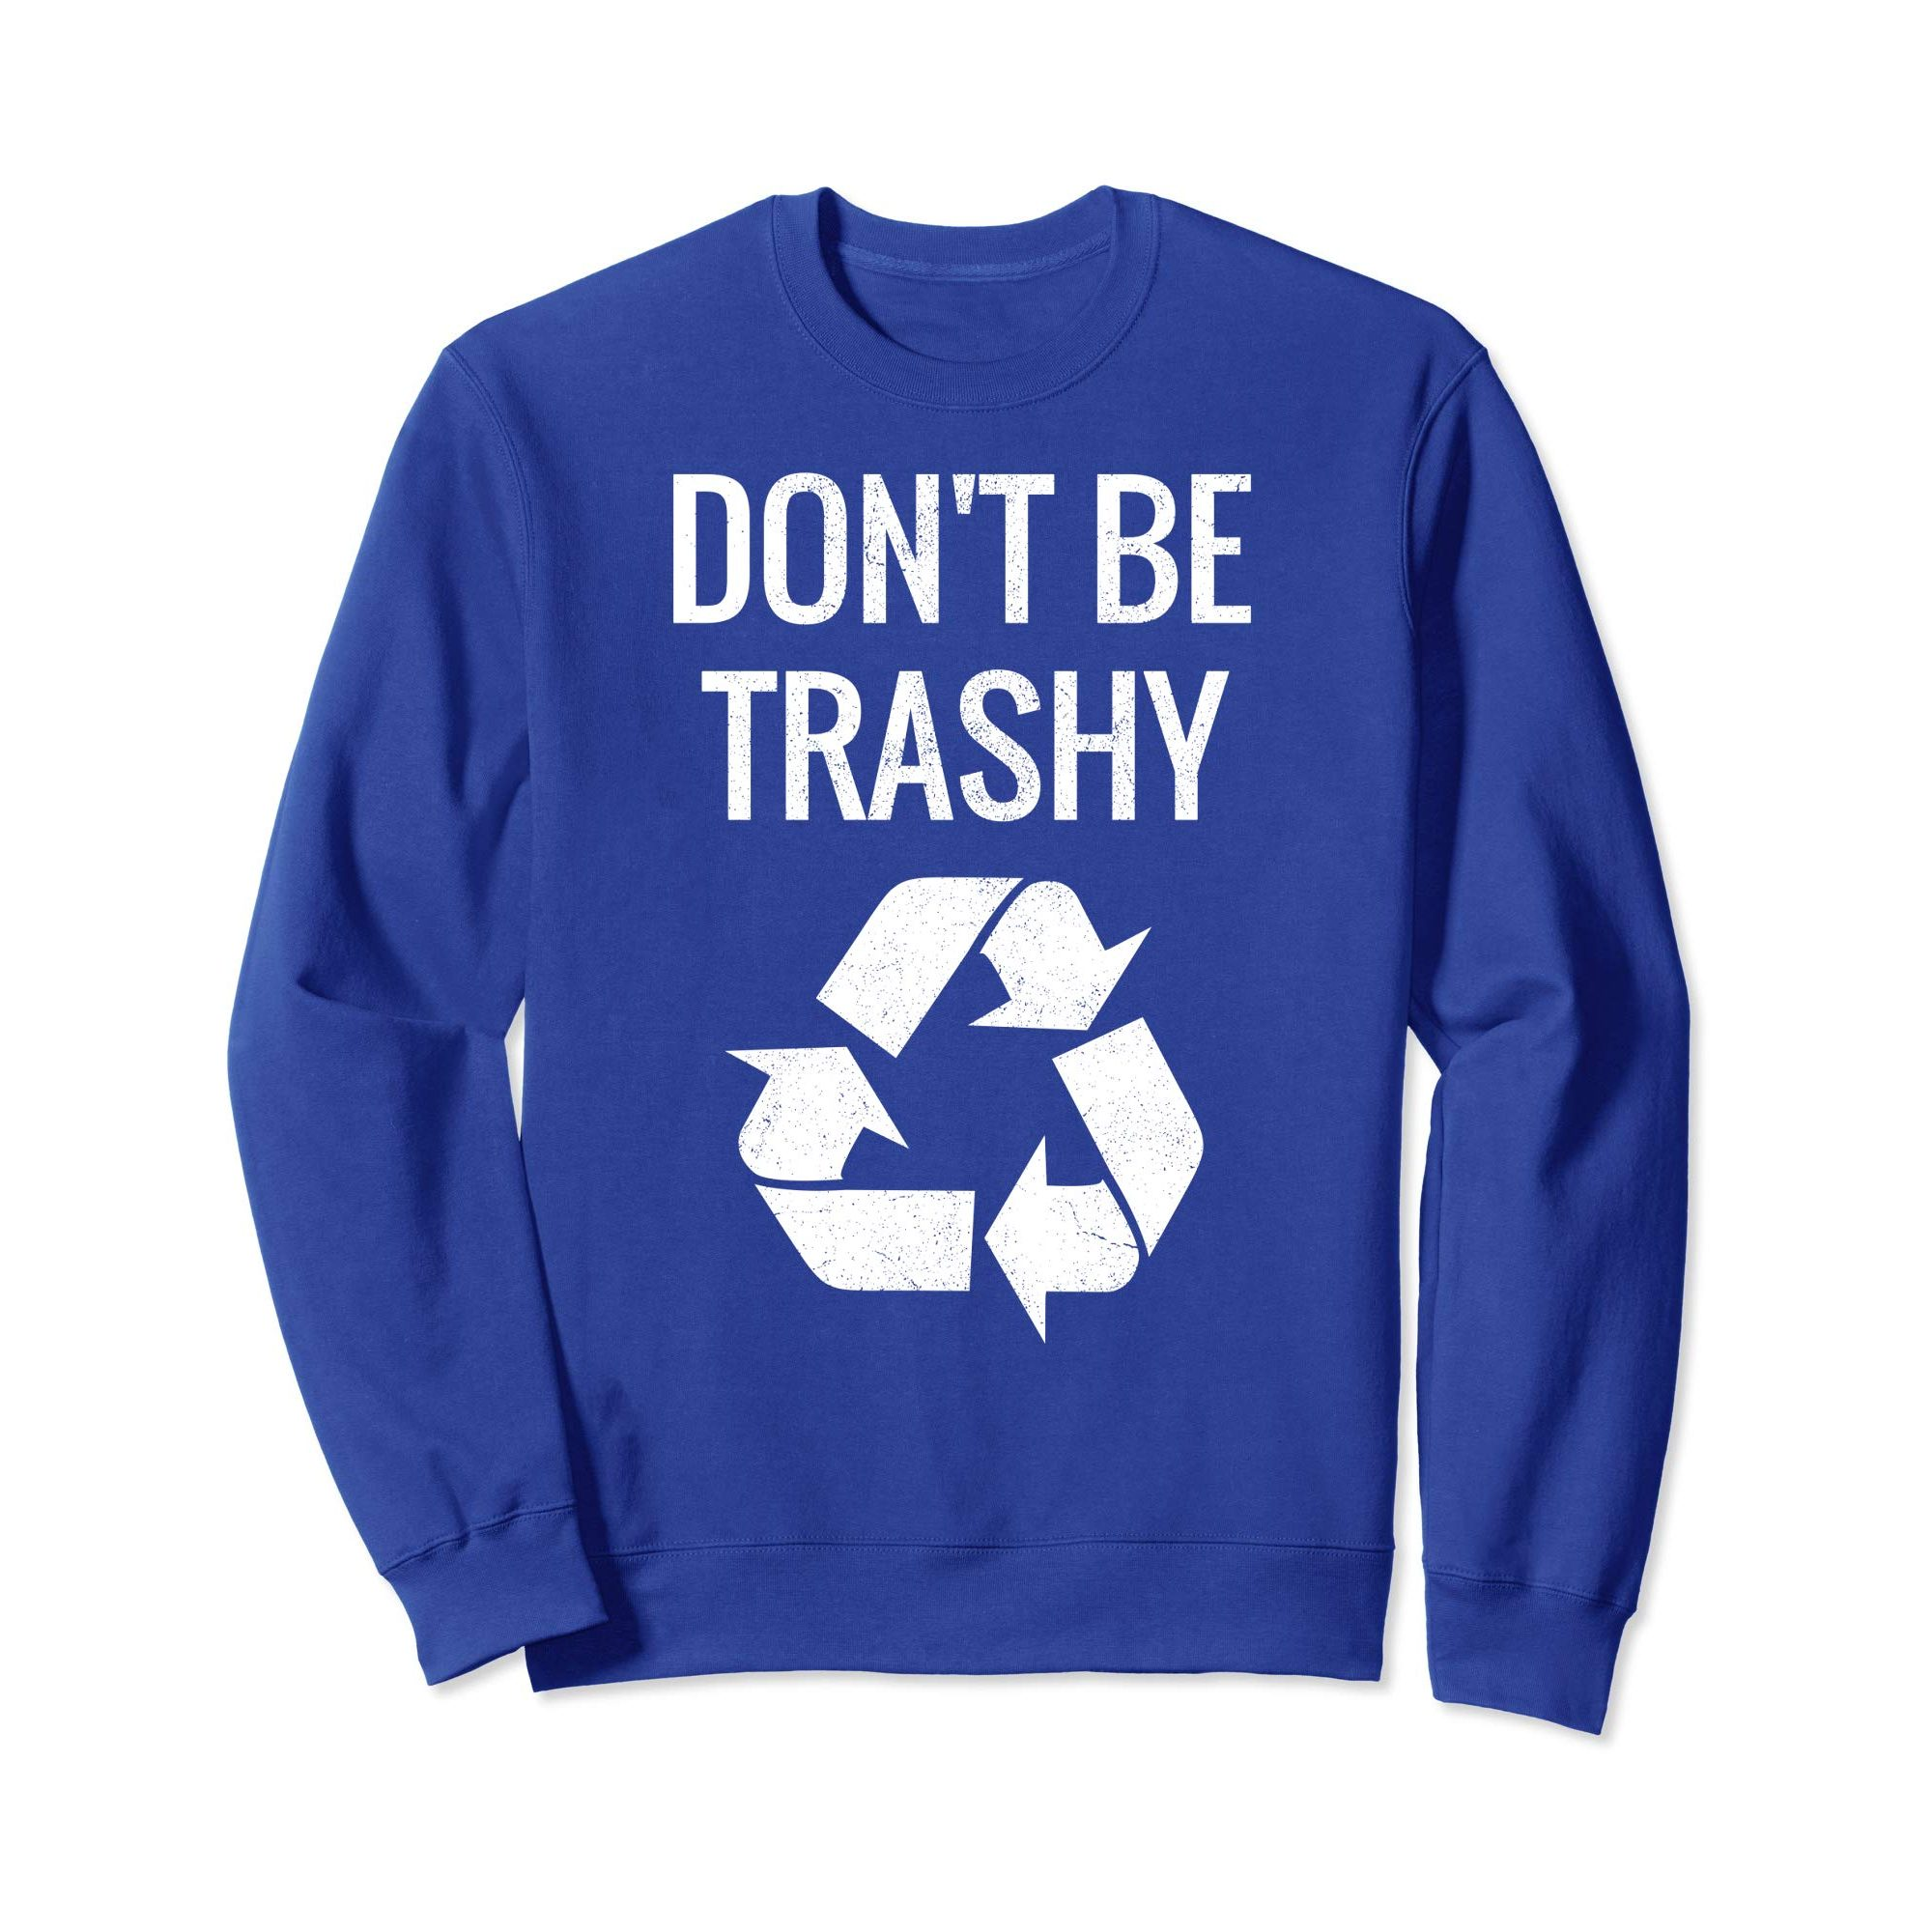 DON'T BE TRASHY GRAPHIC SWEATSHIRT IN WHITE FONT